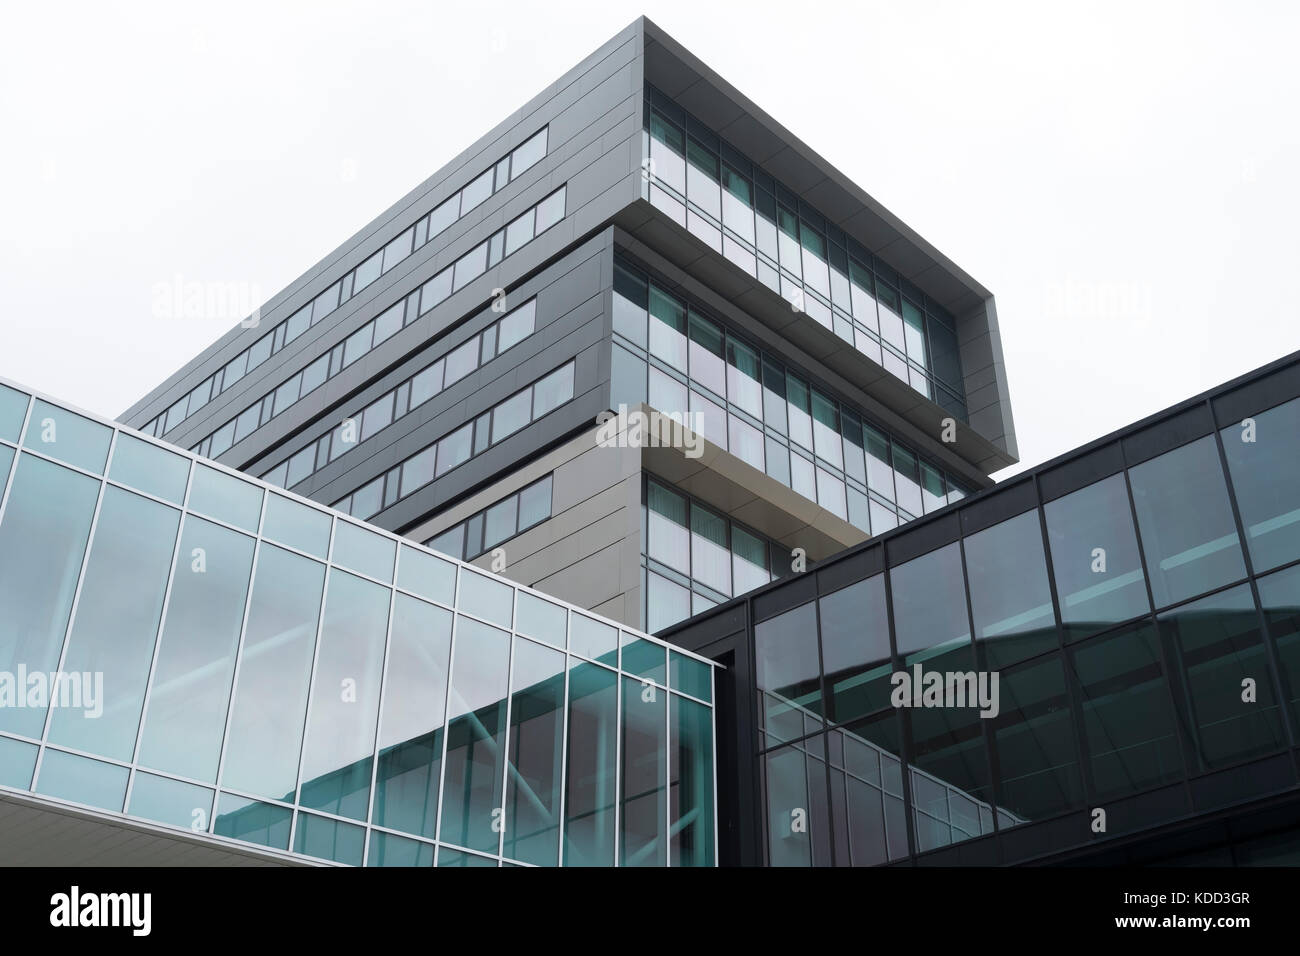 Liverpool Exhibition Centre, Architecture, angular, straight lines, colour - Stock Image